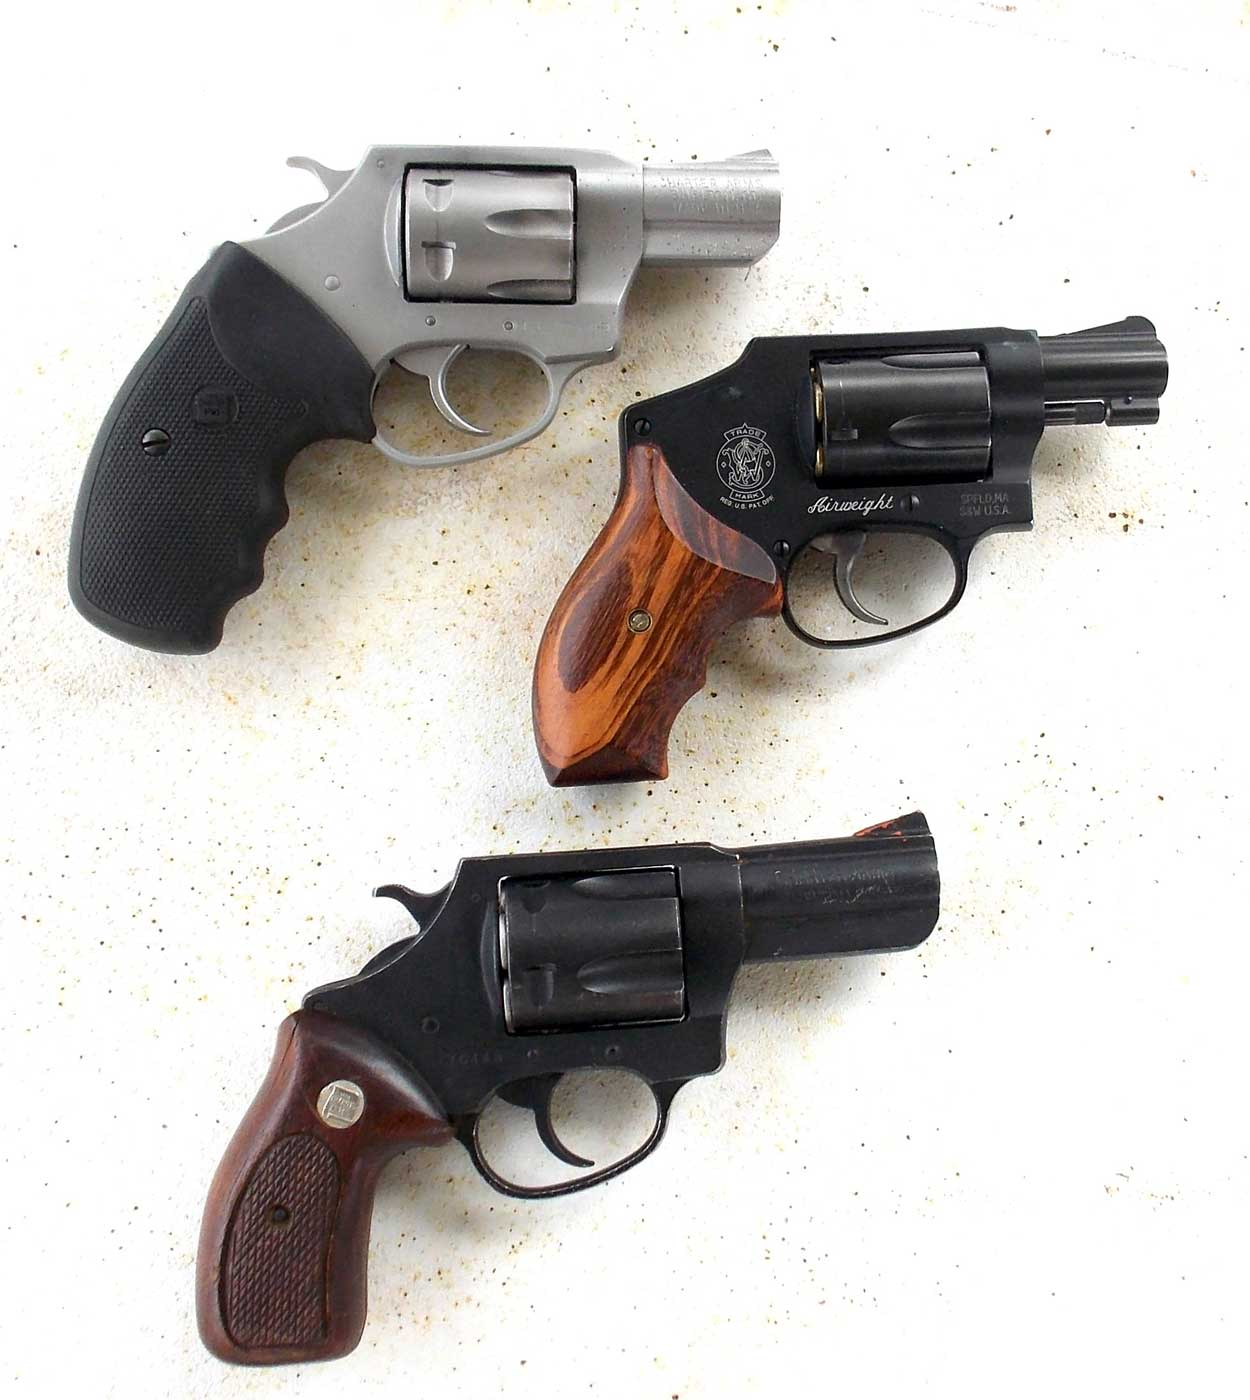 Charter Arms Pathfinder .22, Smith and Wesson 442 .38, and Charter Arms Bulldog .44 Special revolvers